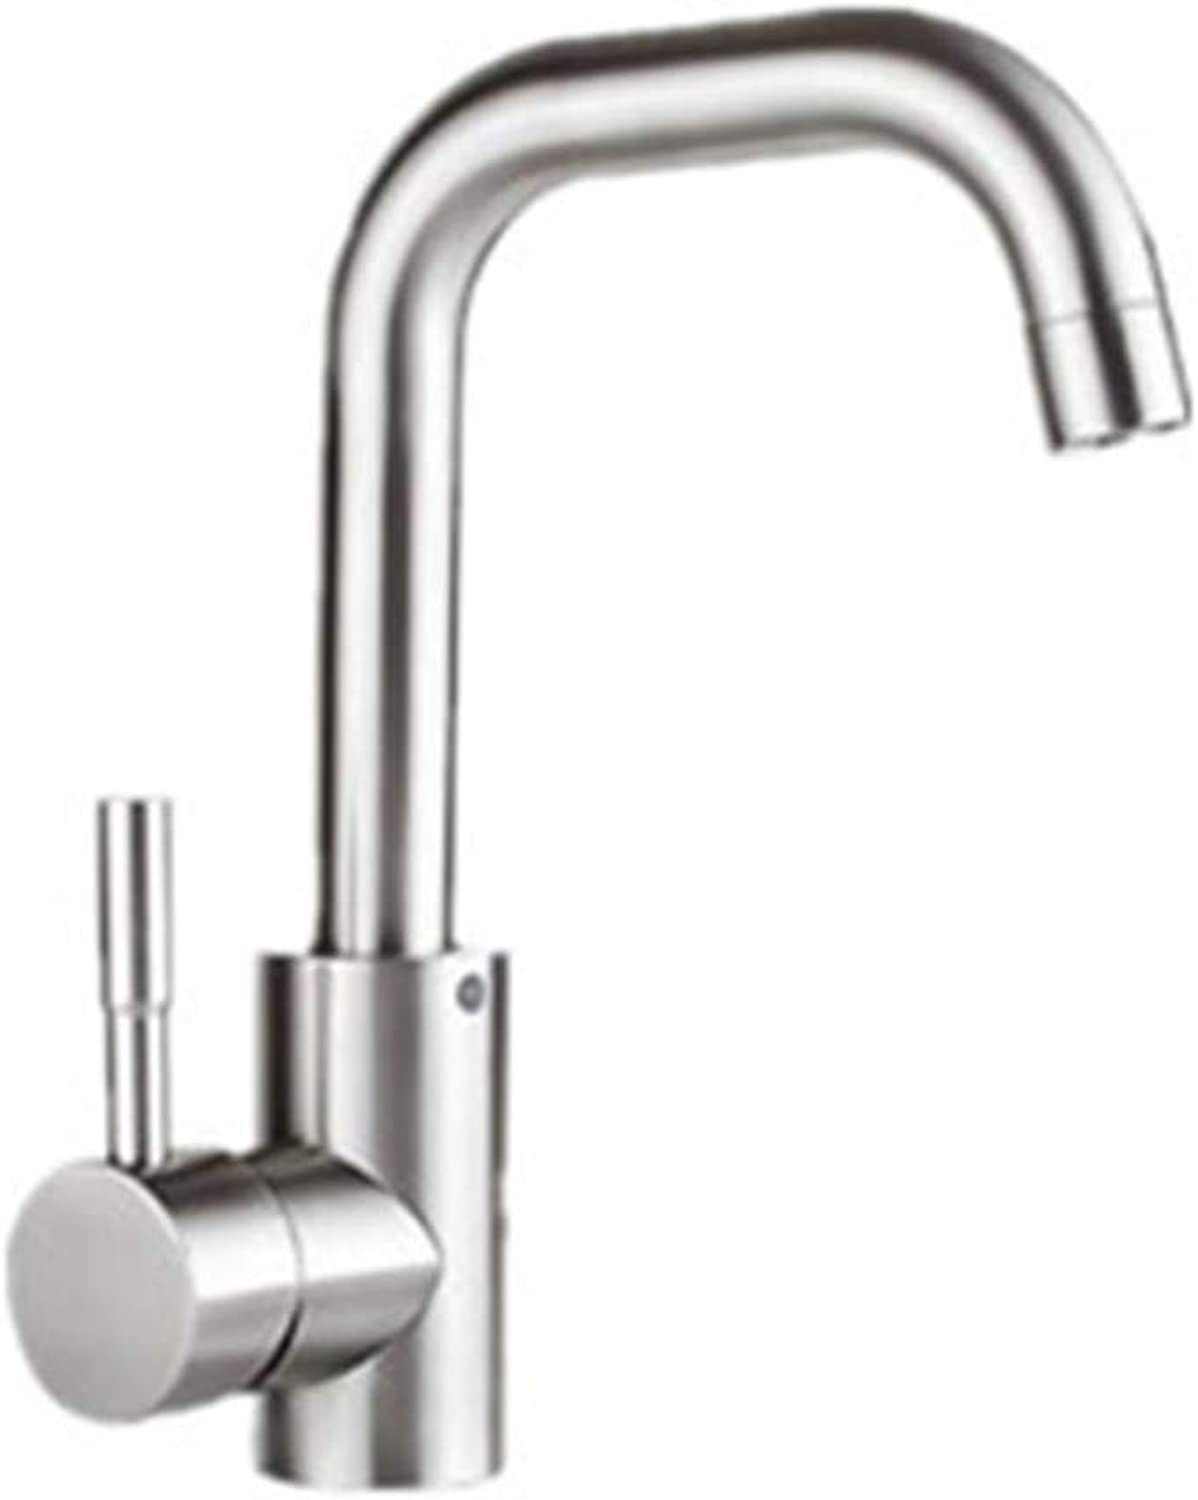 LYBSD Bathroom Sink Taps Cold And Hot Dishes Basin Faucet Fashion Bathroom Kitchen C2